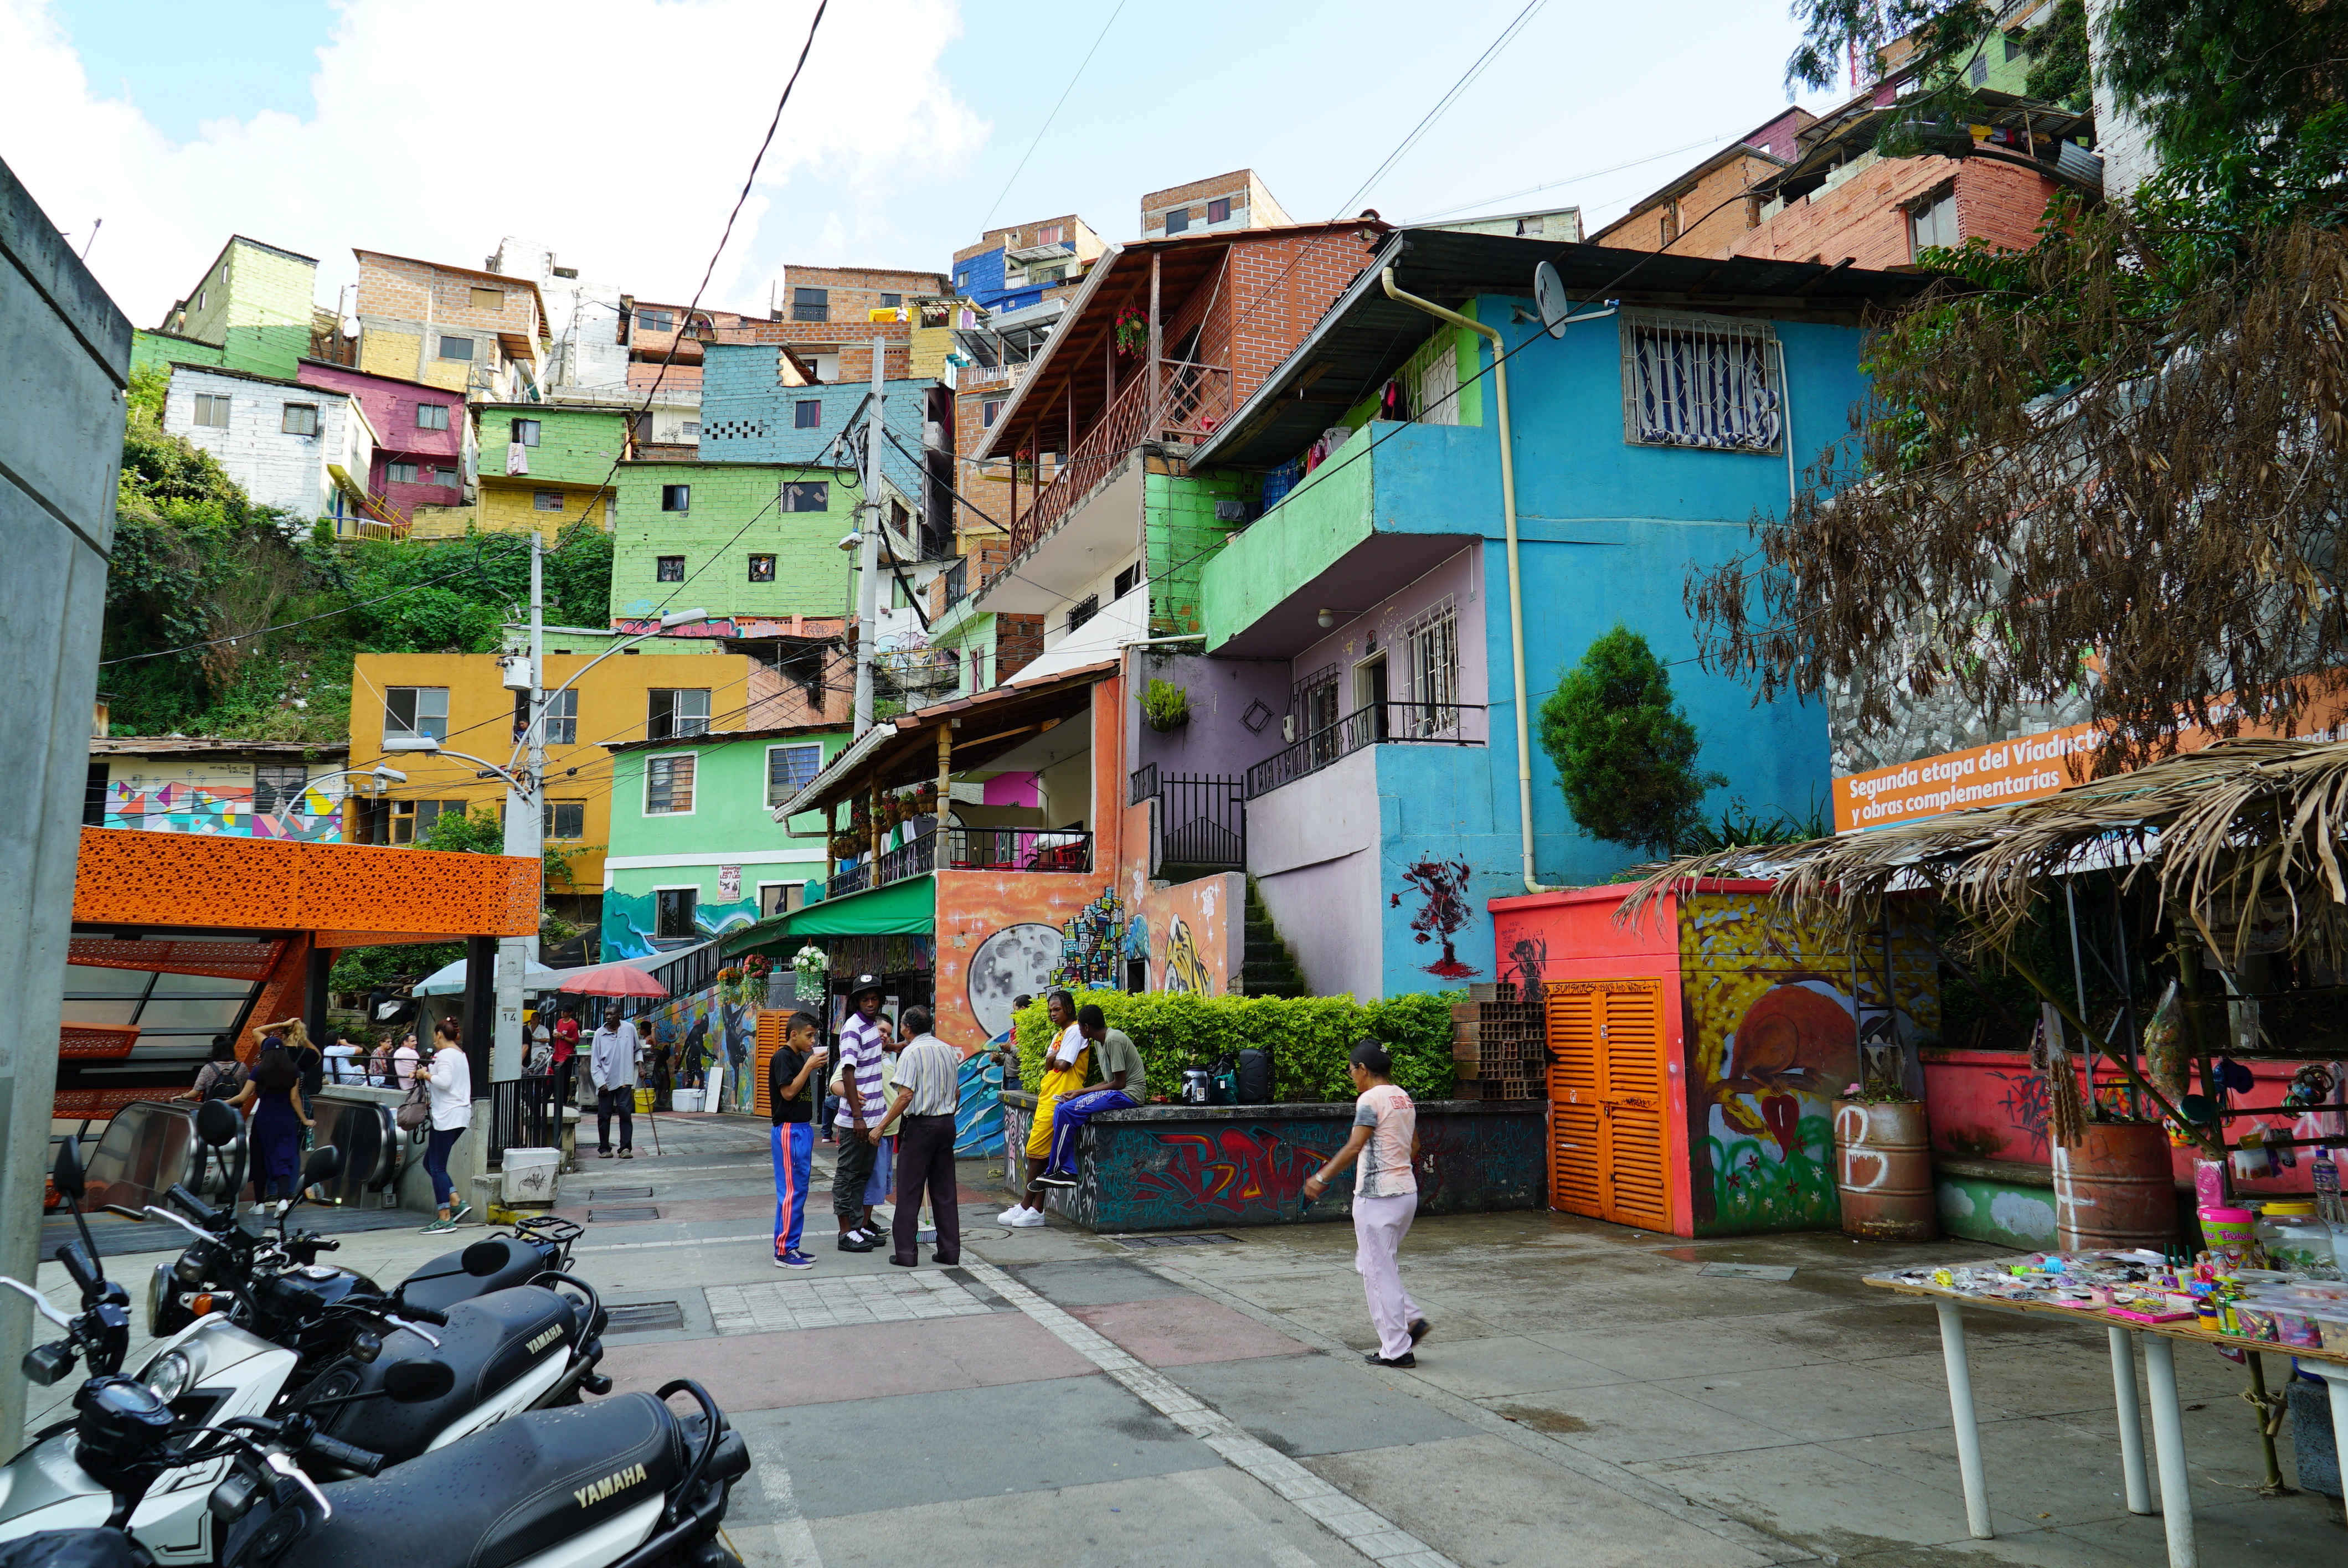 180315153021-colombia-medellin-houses